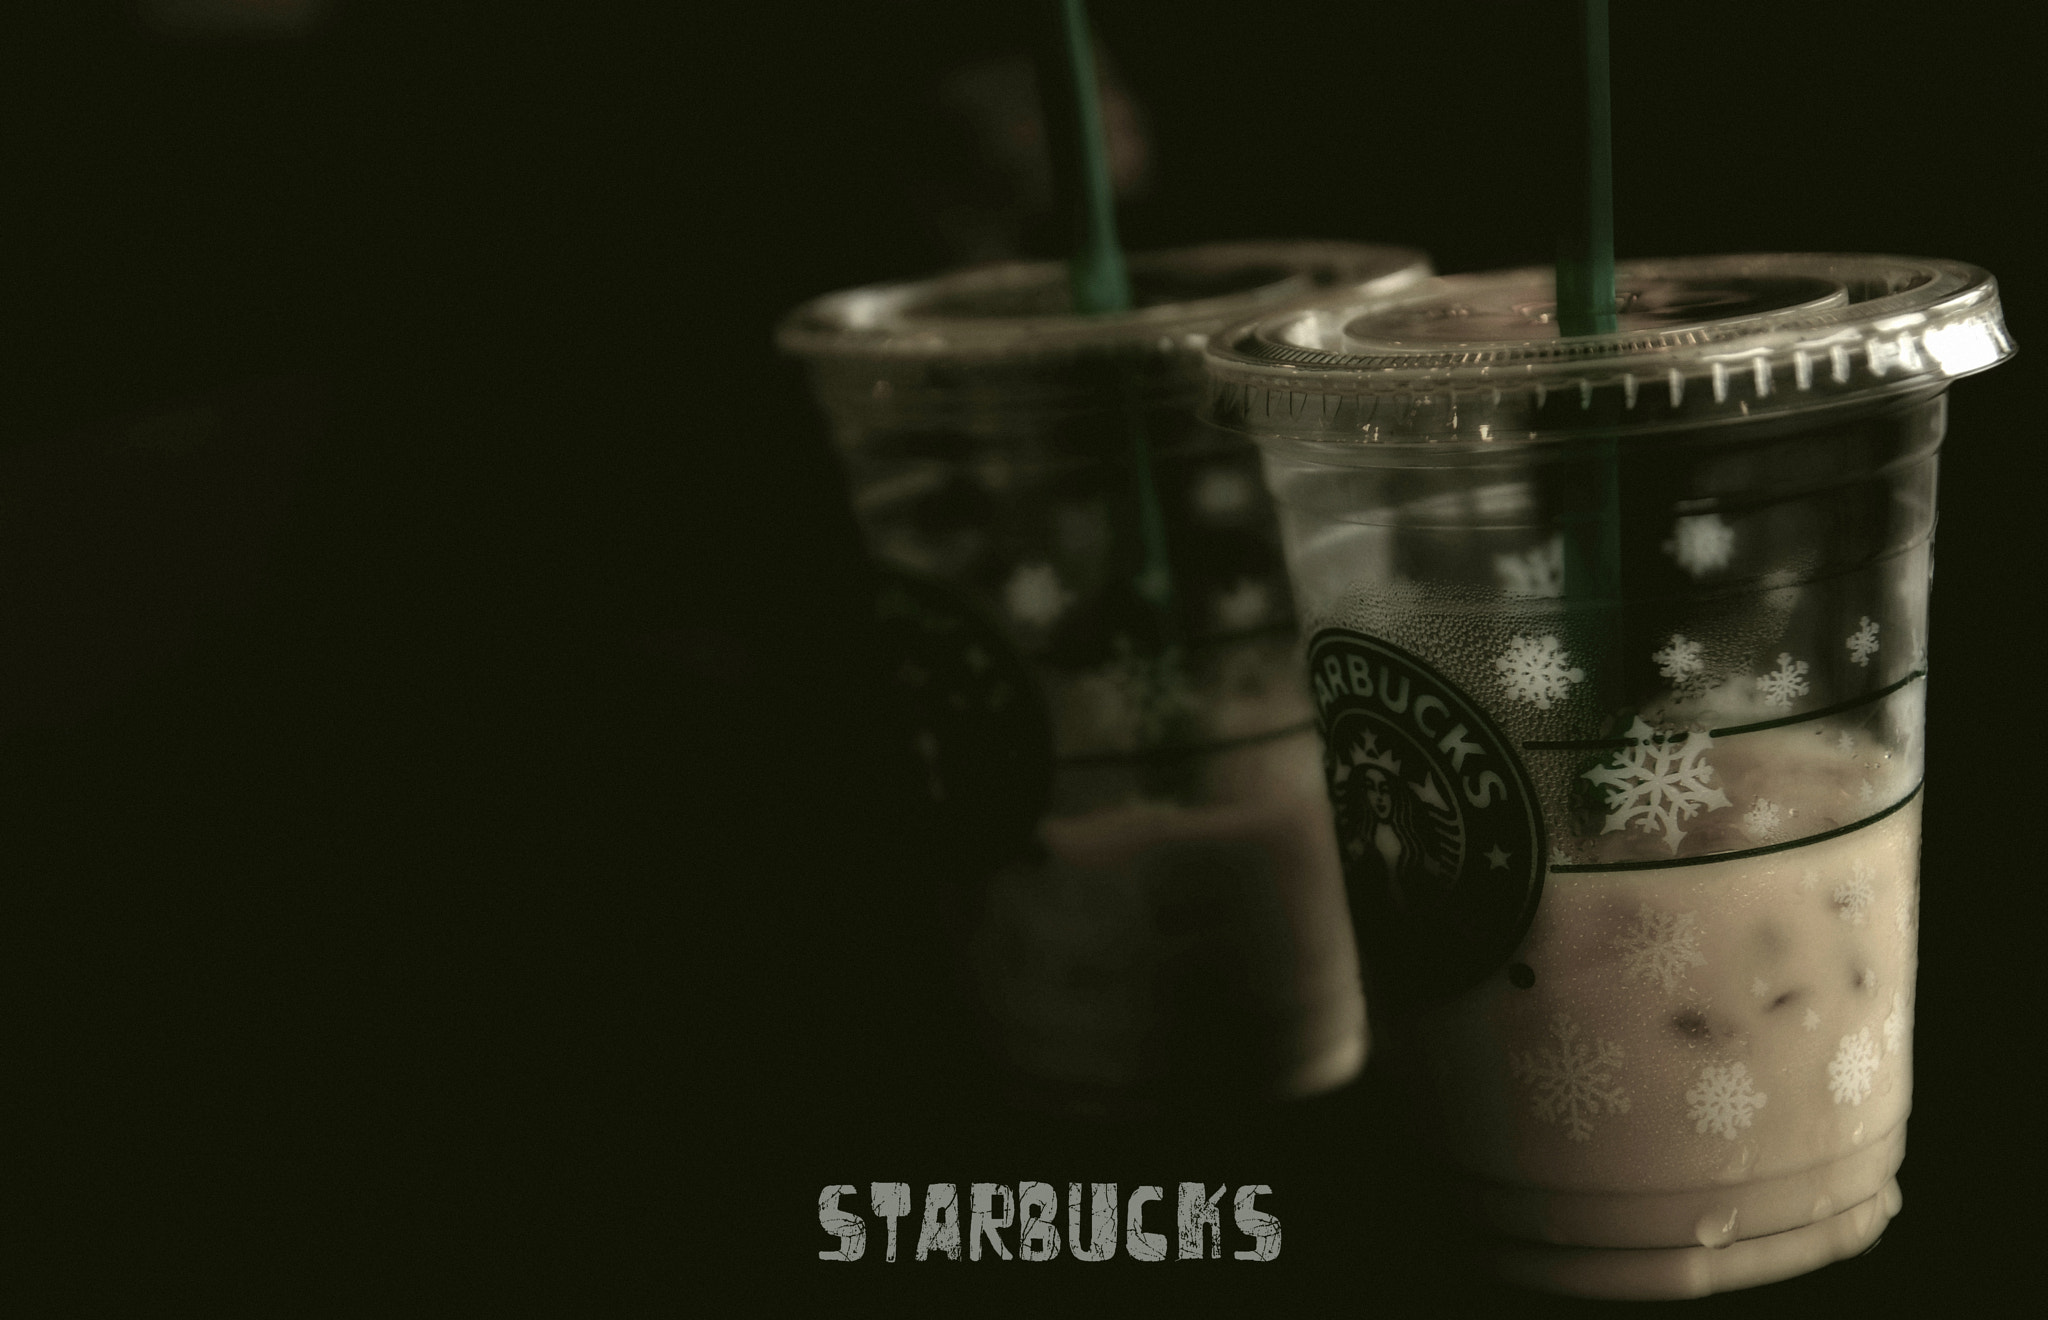 Photograph starbucks by Wak Kundang on 500px